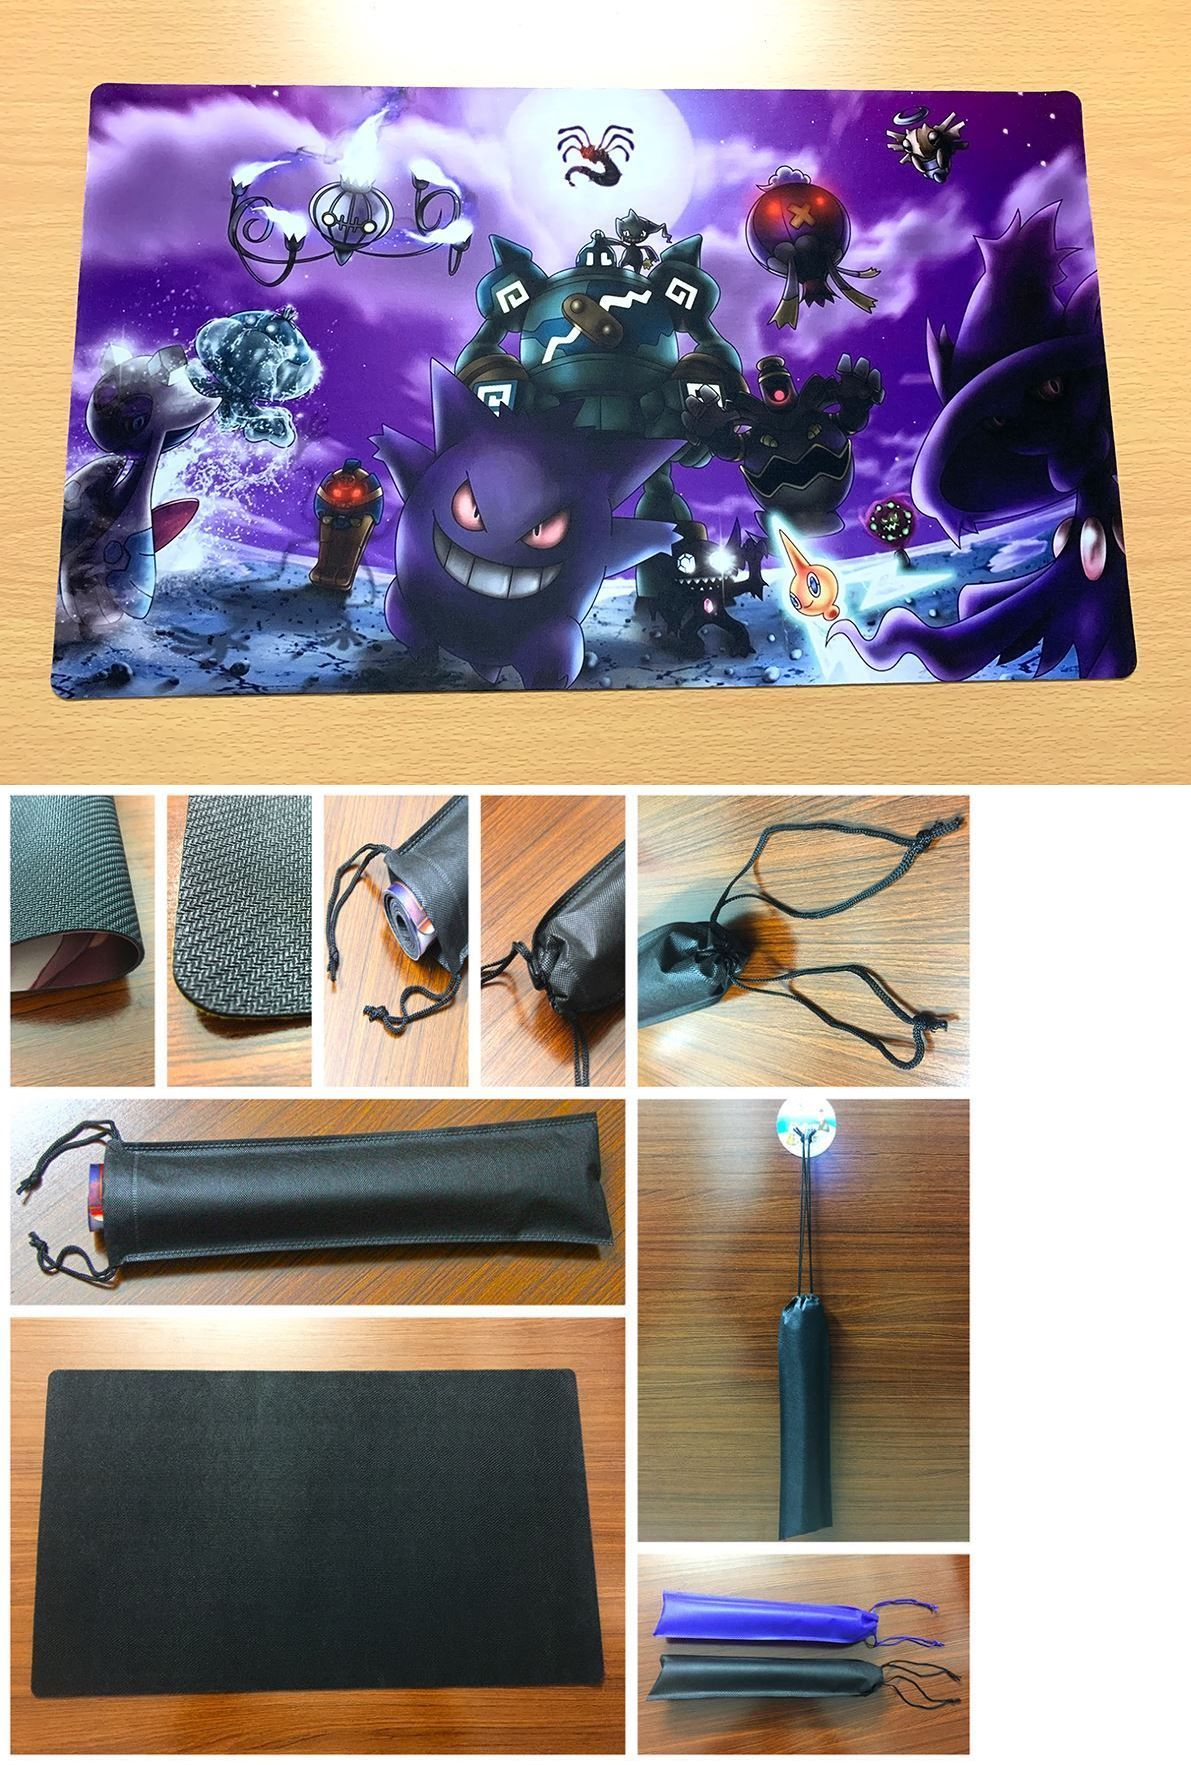 48164ec6c5b1 Other Pok mon TCG Items 2608: F1647 Free Mat Bag Custom Playmat ...